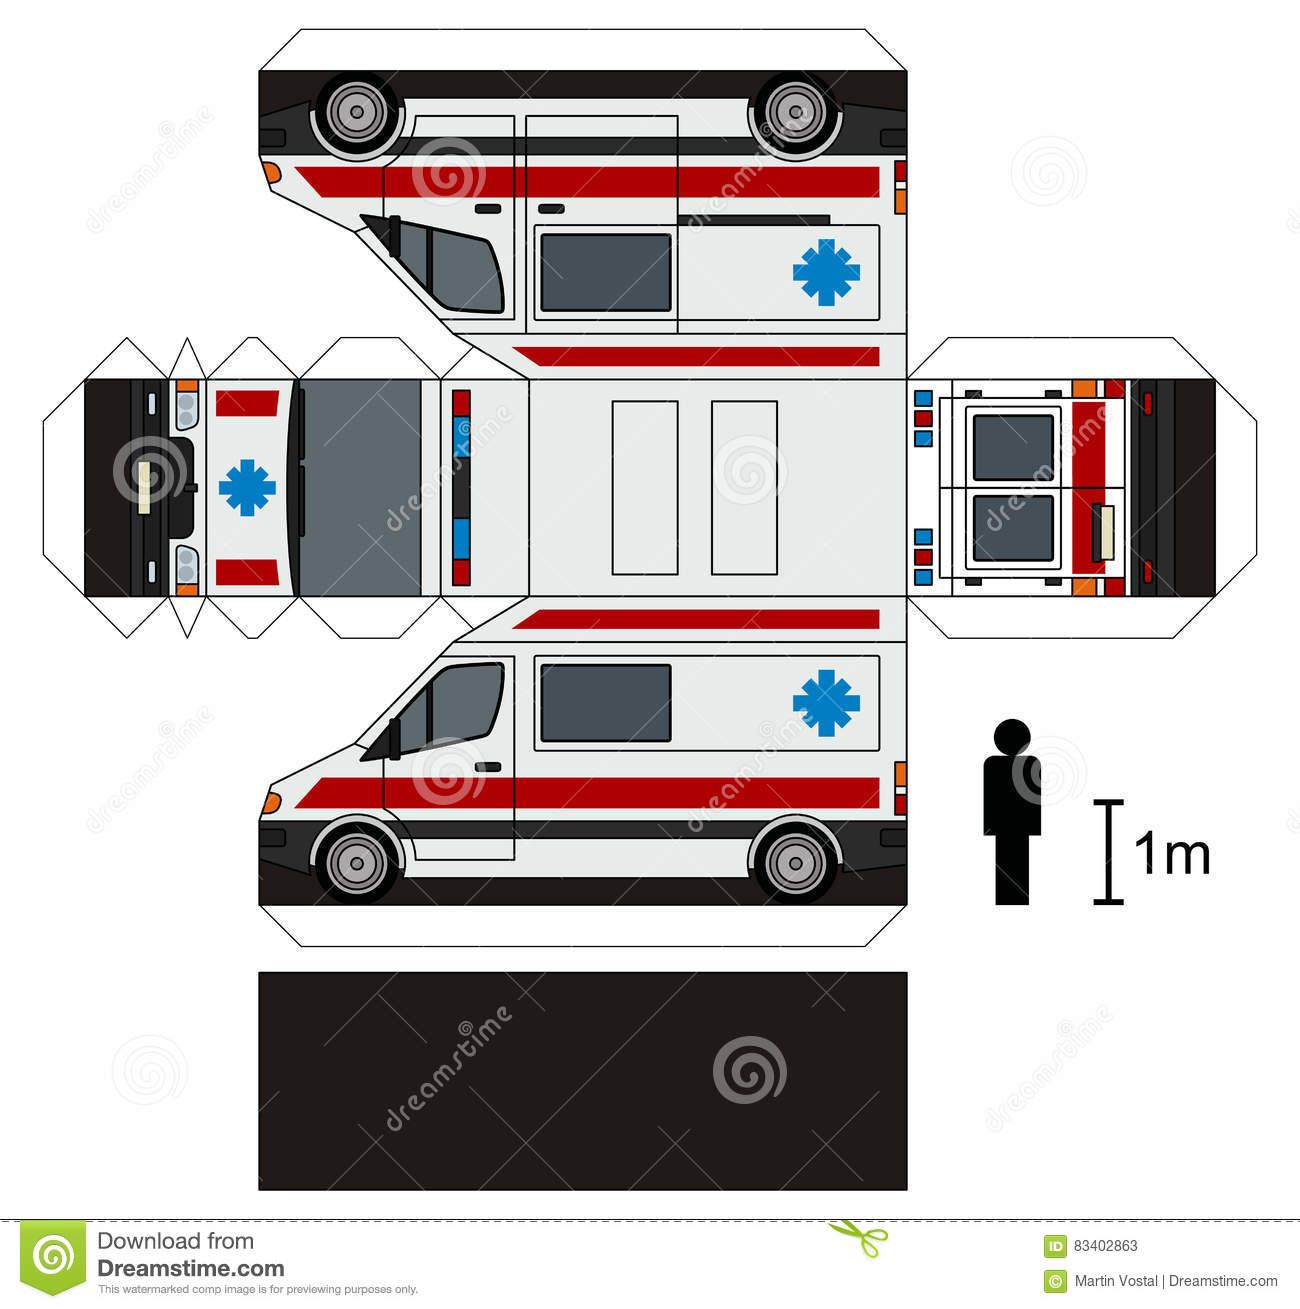 Paper Model Of An Ambulance - Download From Over 58 Million High ...